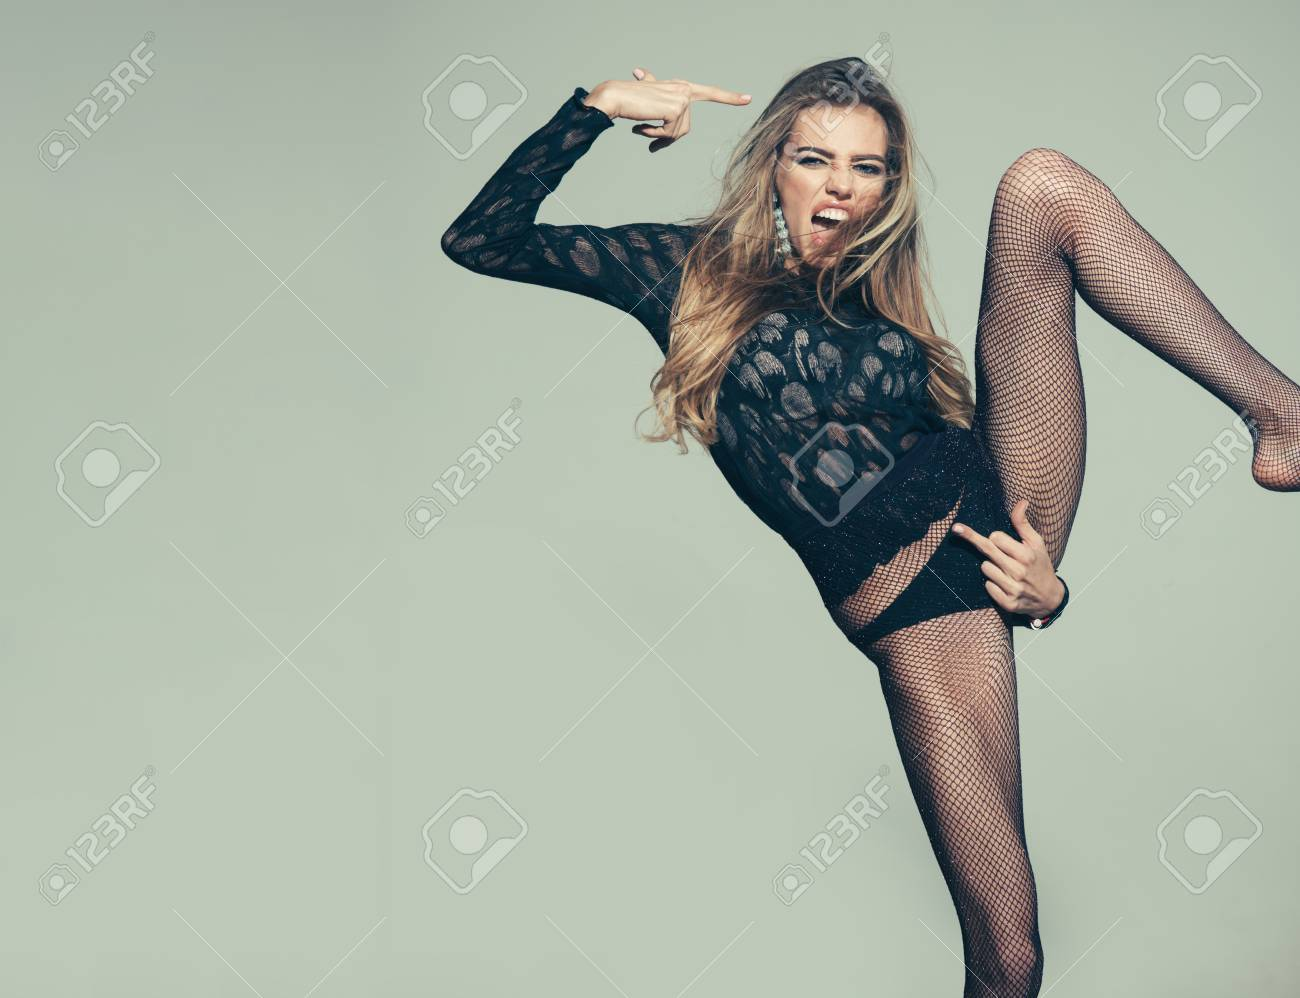 Sexy woman shows fuck gesture on her panties. Obscene concept. Girl in lace  top and underwear, tights in black panties. Hand touching pubis in fuck  gesture.